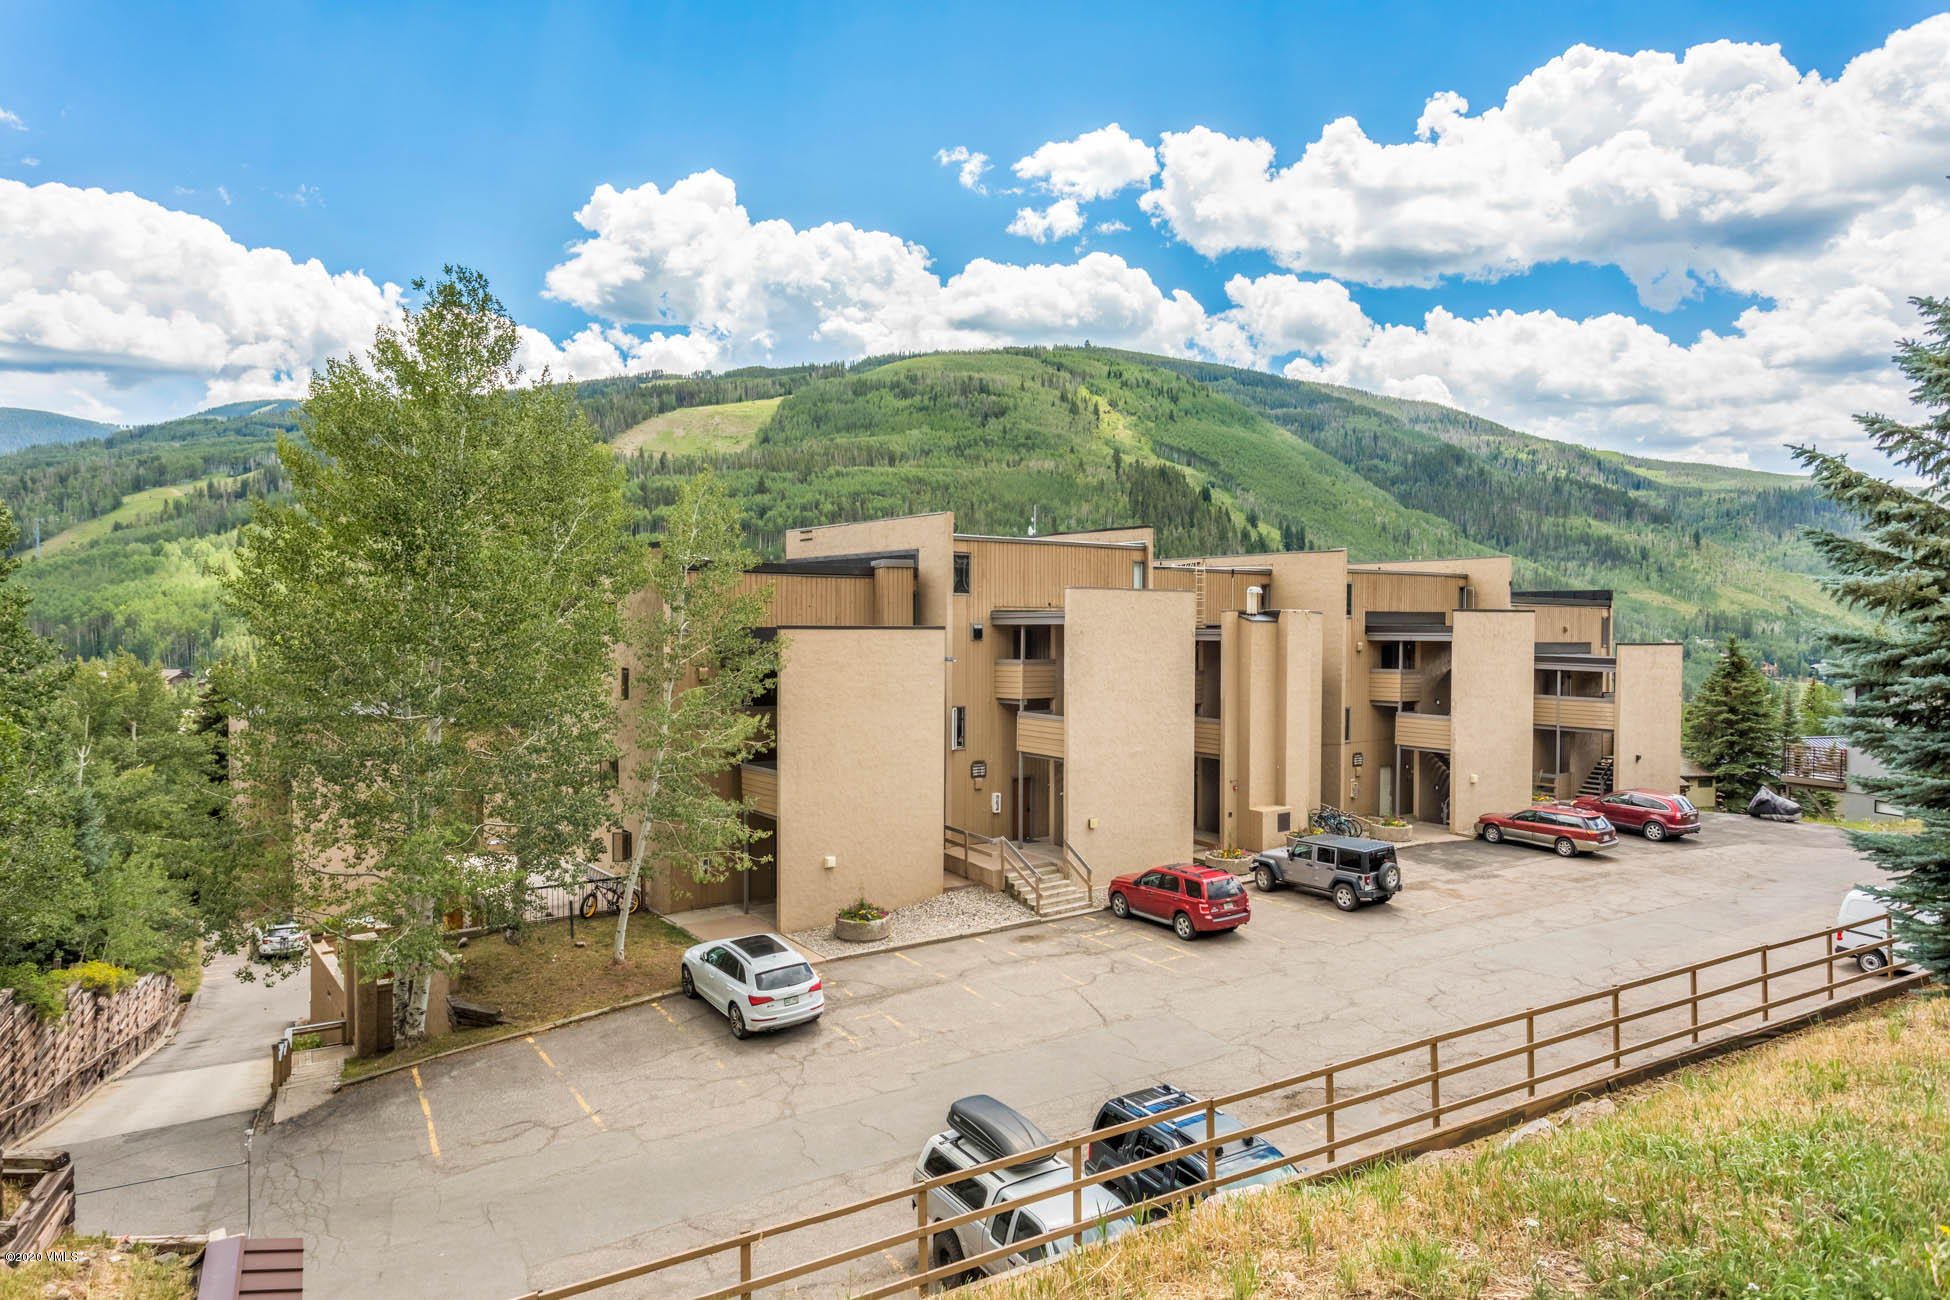 This is your opportunity to live and own in Vail!  Fantastic location in Sandstone, steps to the bus stop, minutes to Vail Village and Lionshead, and incredible hiking and biking trails just out your back door.  This one bedroom condominium has 2 story windows that capture sneaky good views of Simba Run on Vail Mountain, sunny and south facing, updated kitchen and living room flooring, and a wood burning fireplace.  Enjoy your morning coffee on the deck and make this your perfect weekenders getaway or let this be the place you call home.  Welcome!